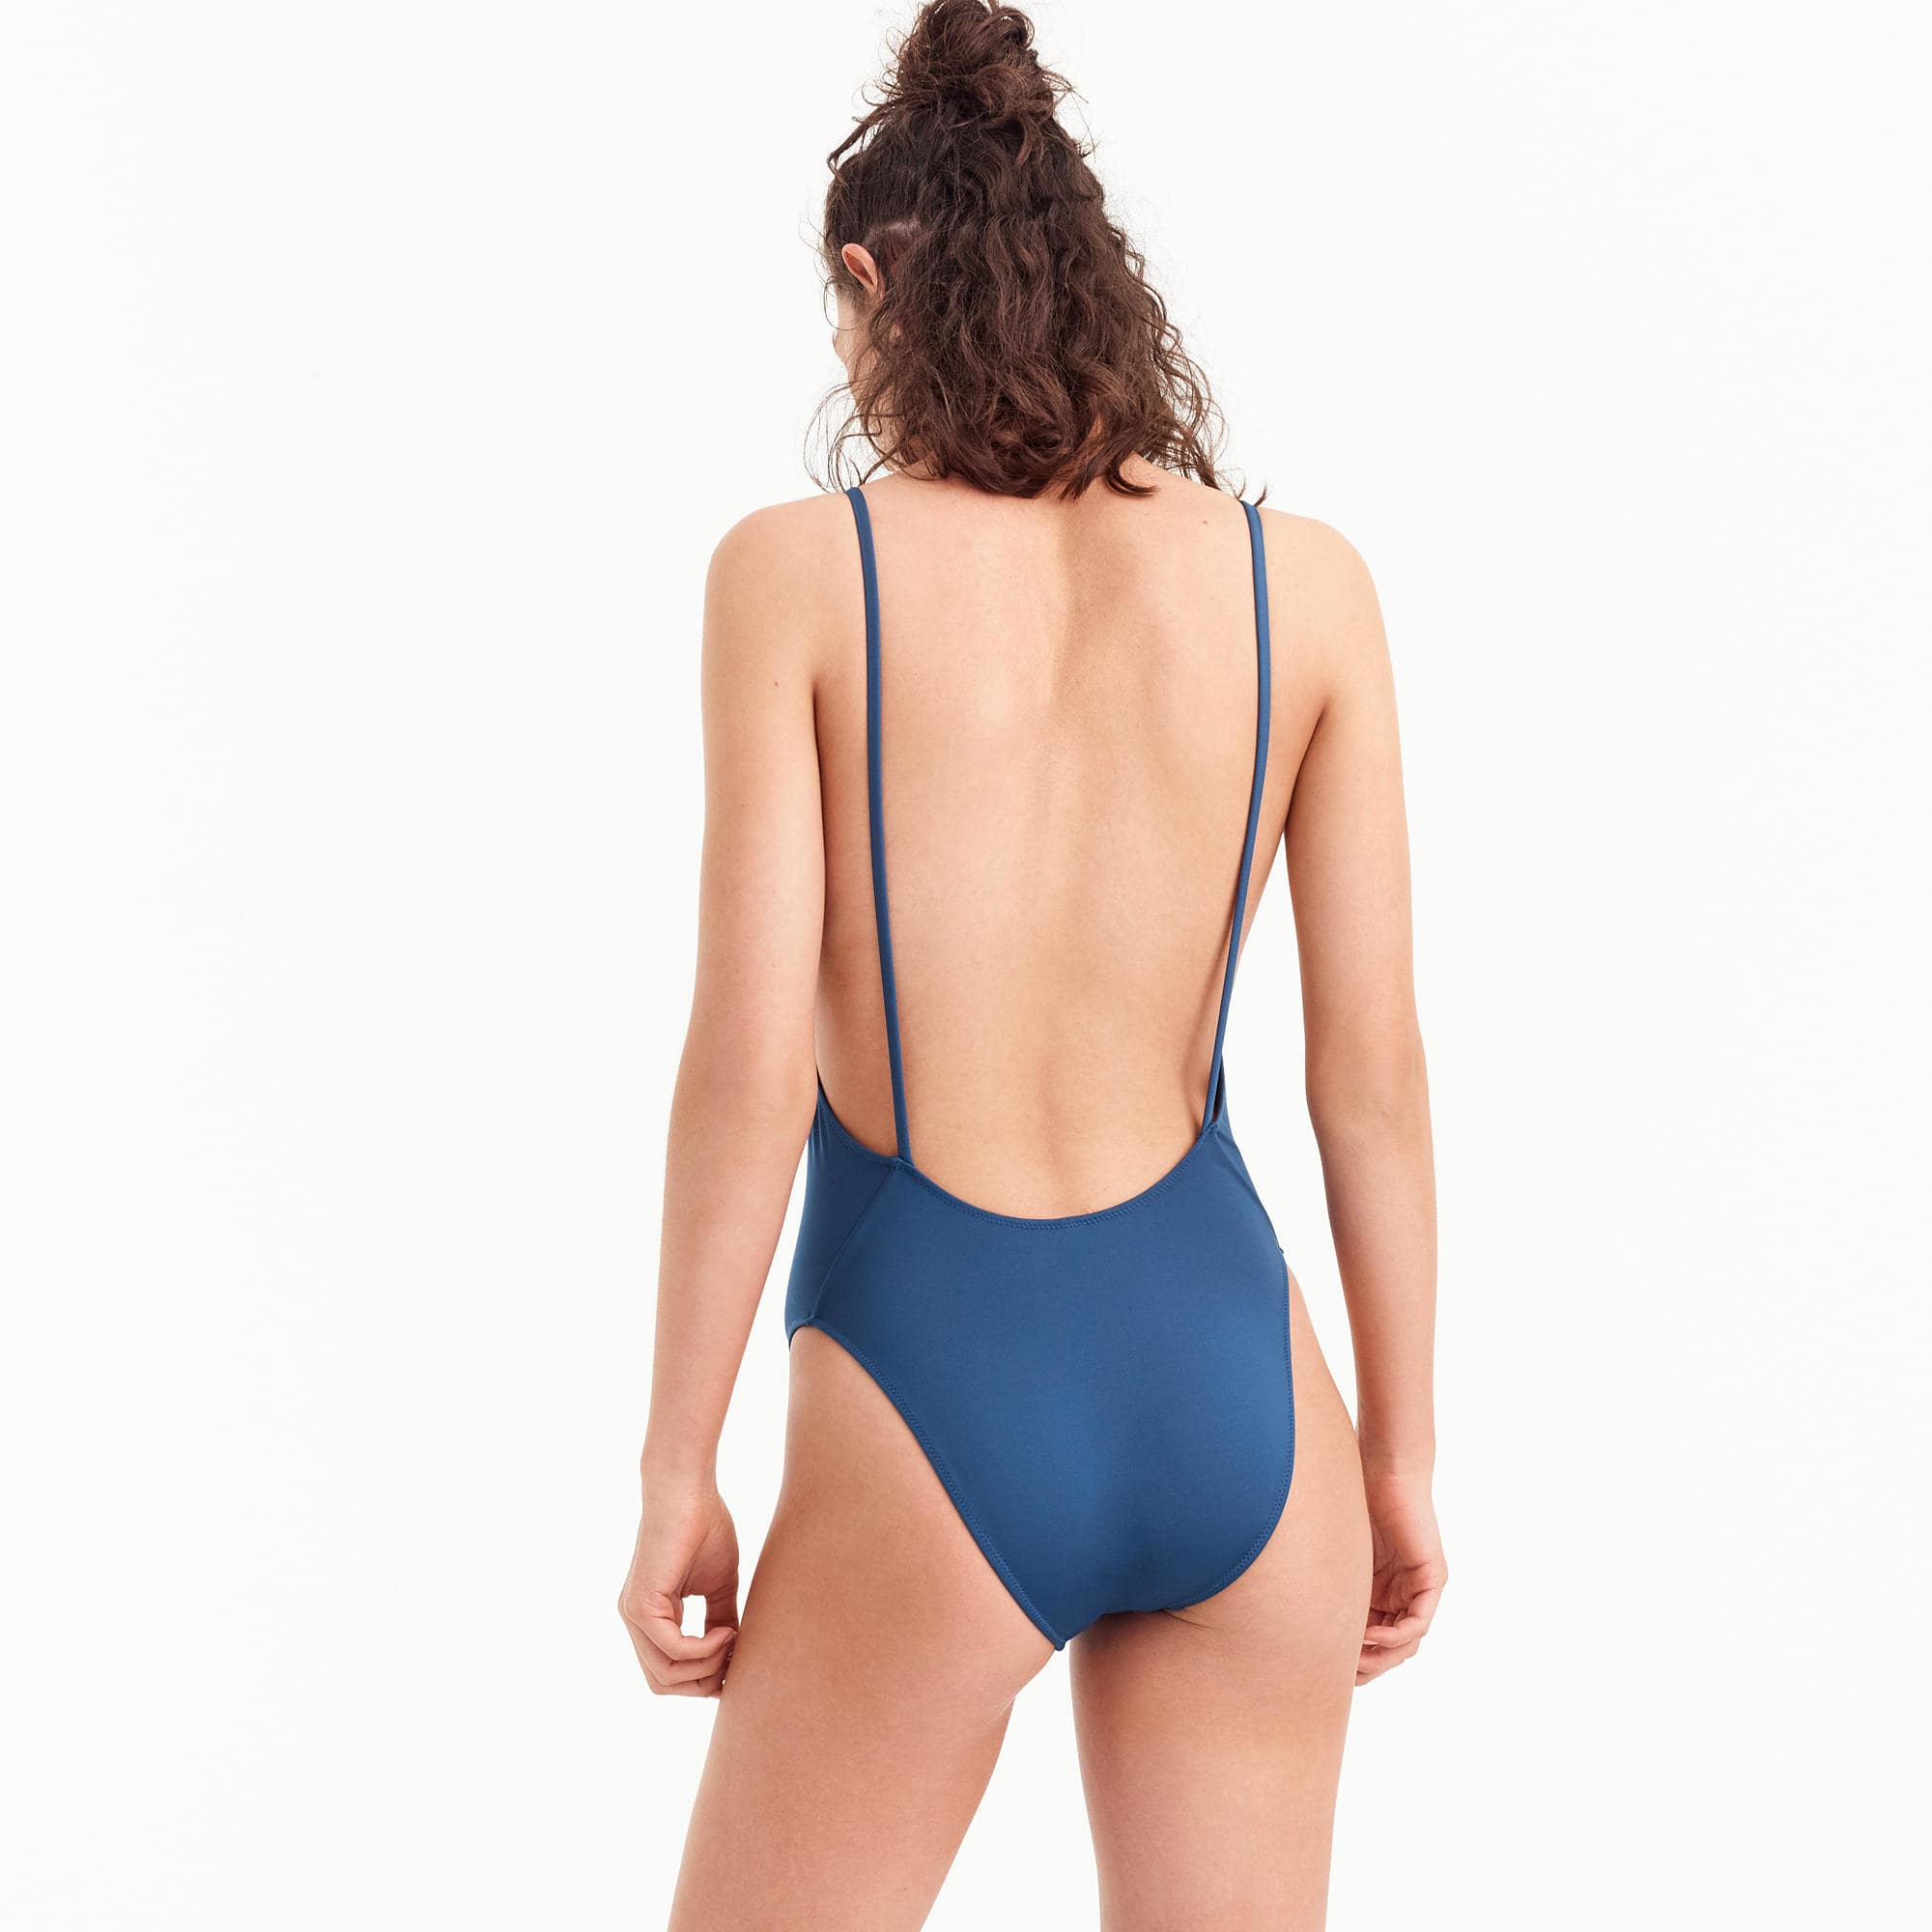 d7549a0ca5659 J.Crew Playa Newport Super-Scoopback One-Piece Swimsuit $49.50